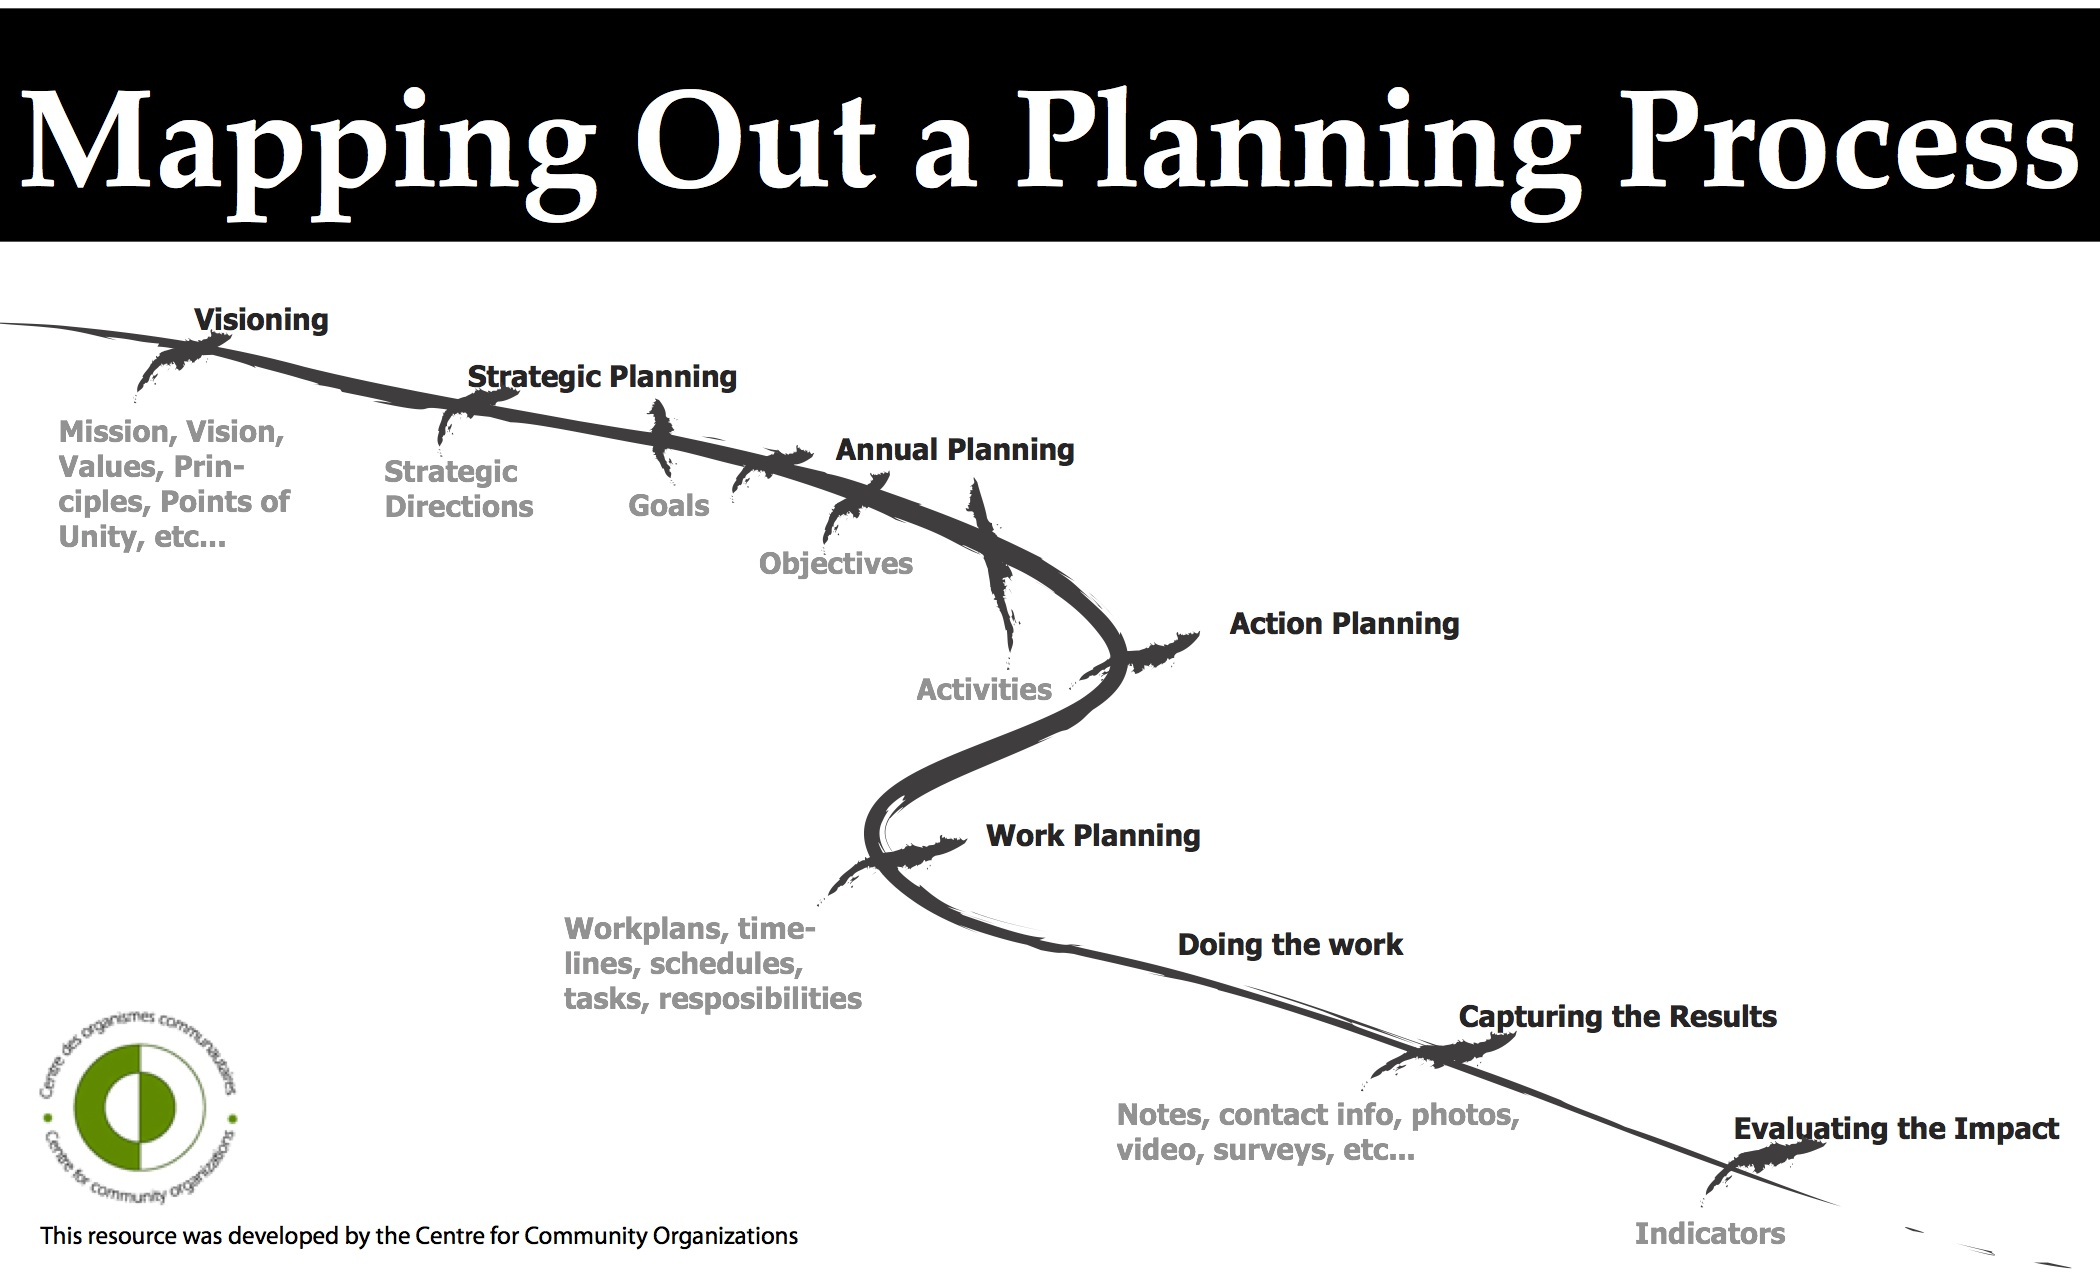 Mapping Out A Planning Process